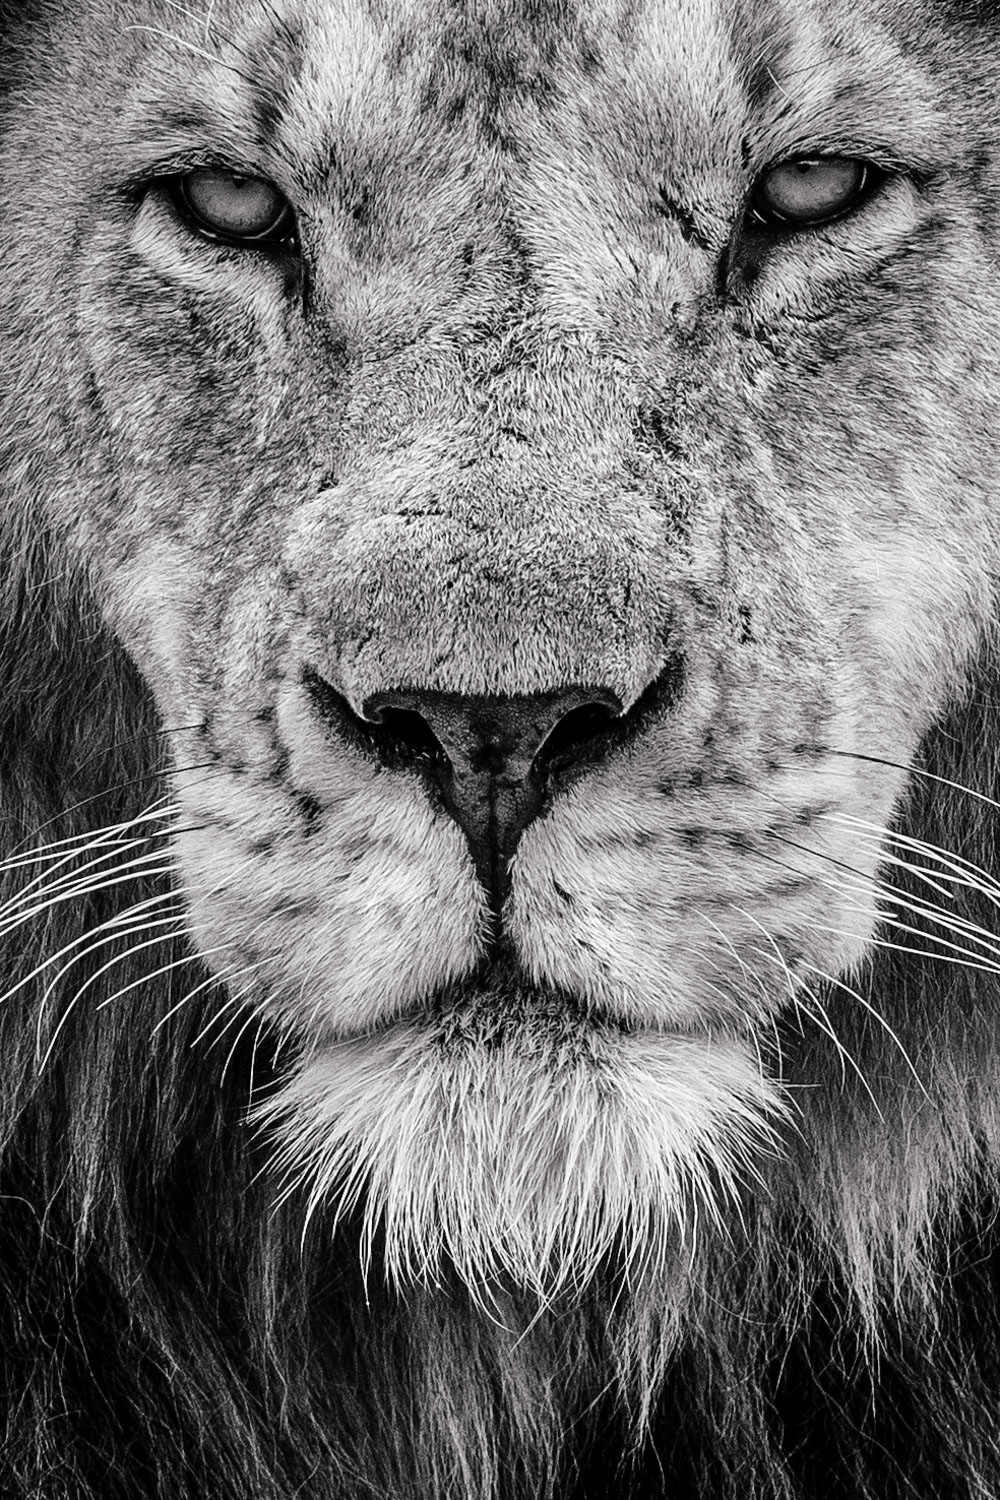 https://i2.wp.com/digital-photography-school.com/wp-content/uploads/2018/09/andrew-sproule-photography-pride-male-lion-masai-mara.jpg?resize=1000%2C1500&ssl=1